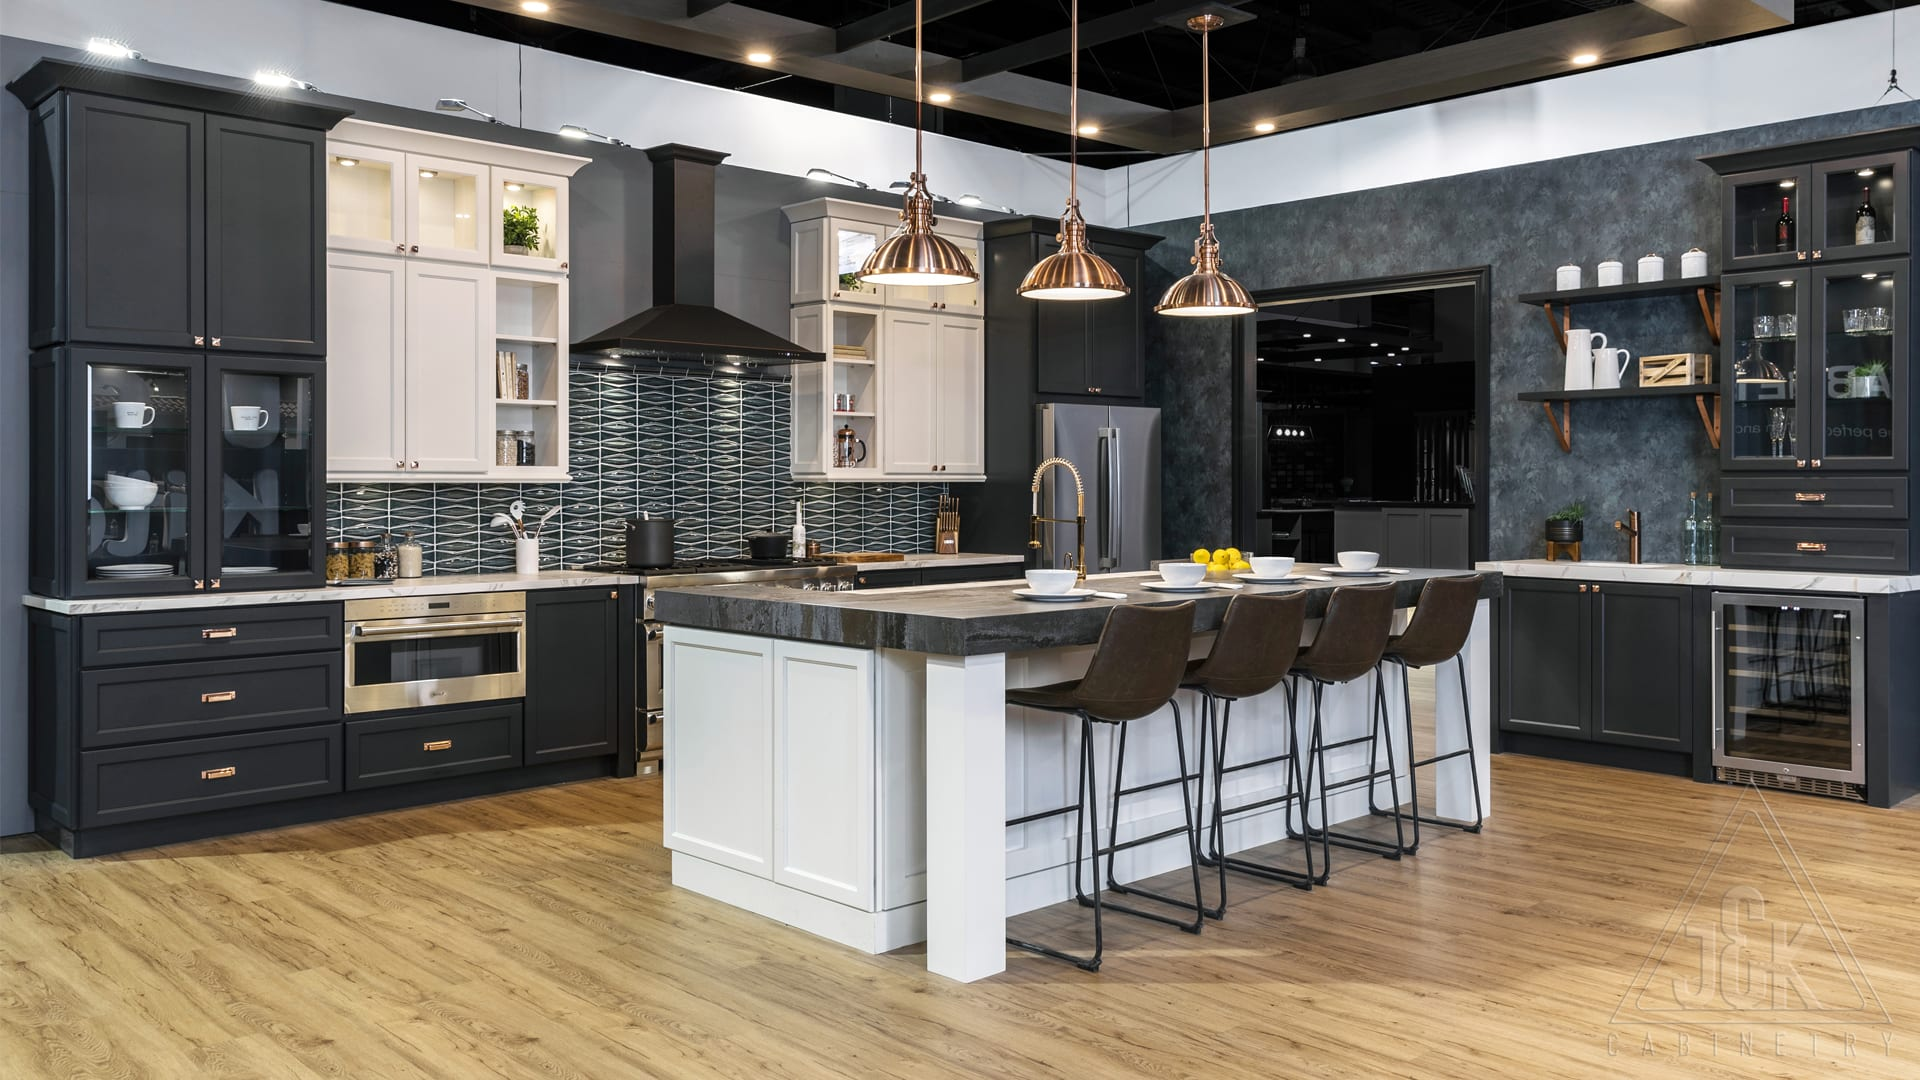 B&q Kitchen Design Jobs J K Cabinetry All Wood Cabinets